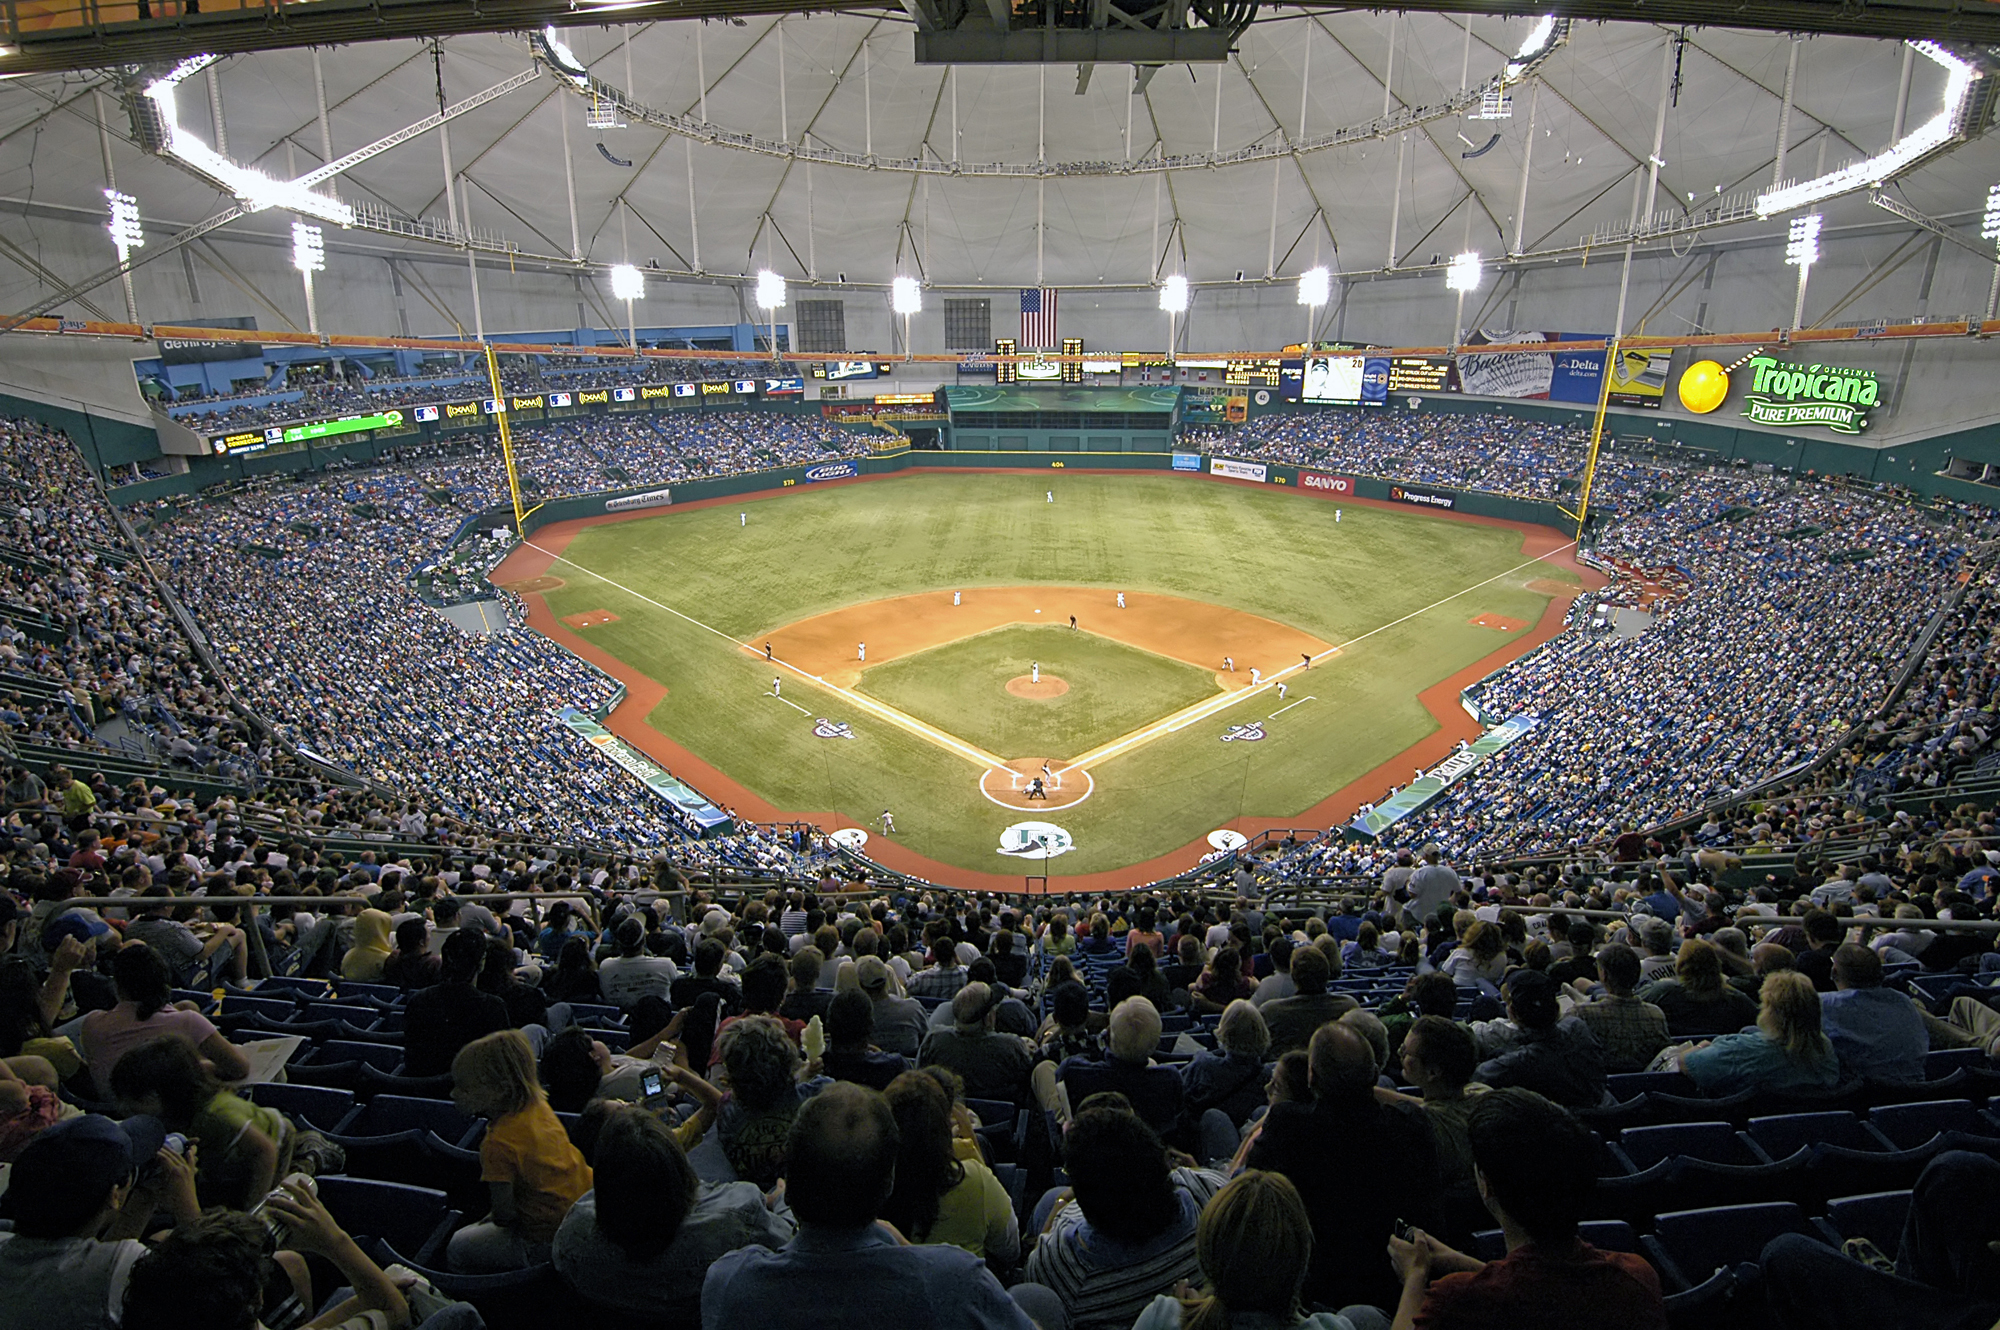 Rays Baseball at Tropicana Field. Photo by City of St. Petersburg.